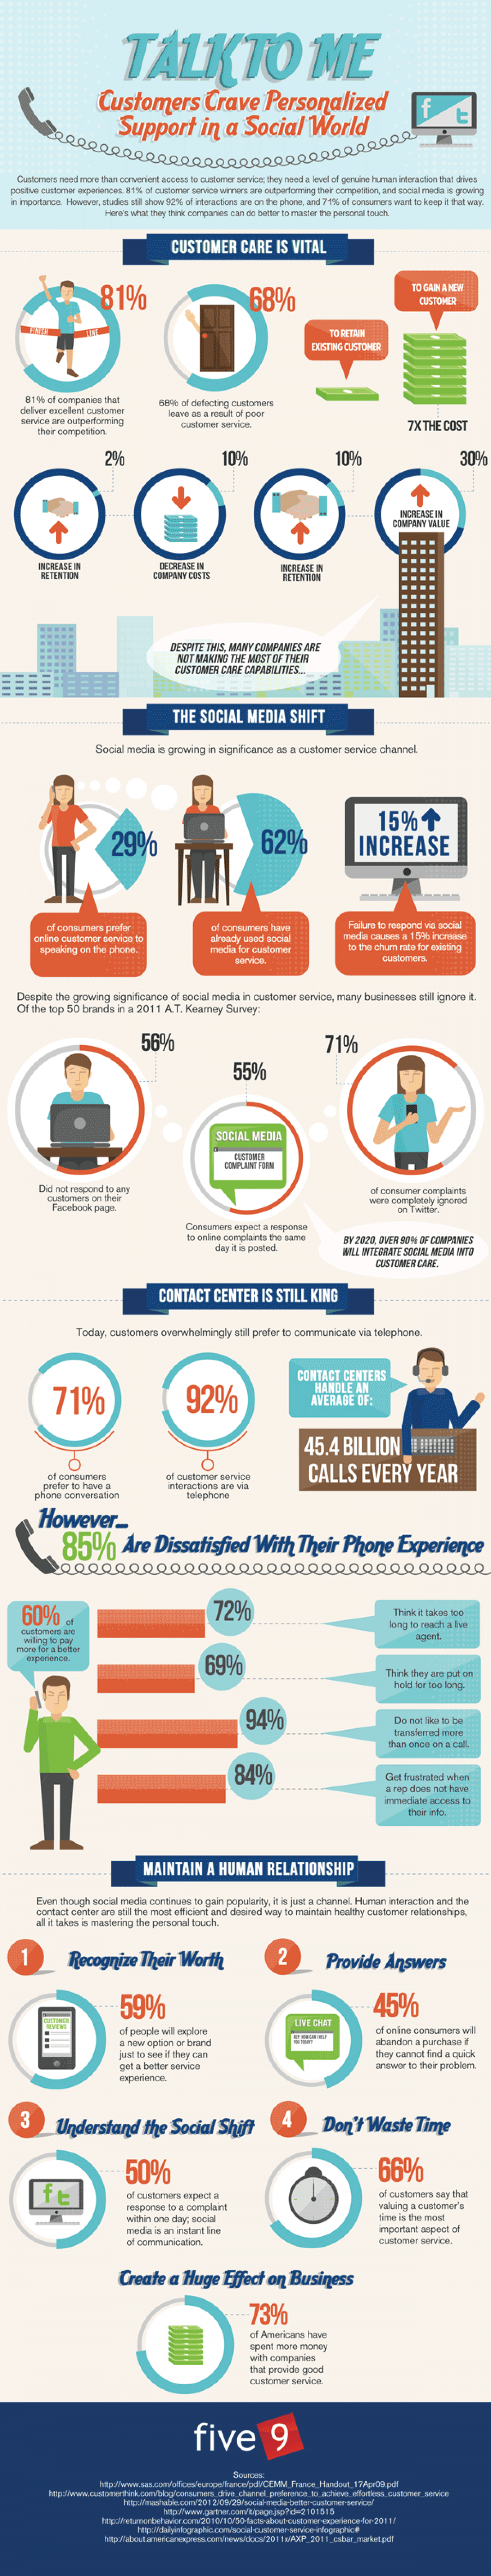 """Talk To Me"" An Assessment of The Call Center Versus Social Media For Customer Care Infographic"